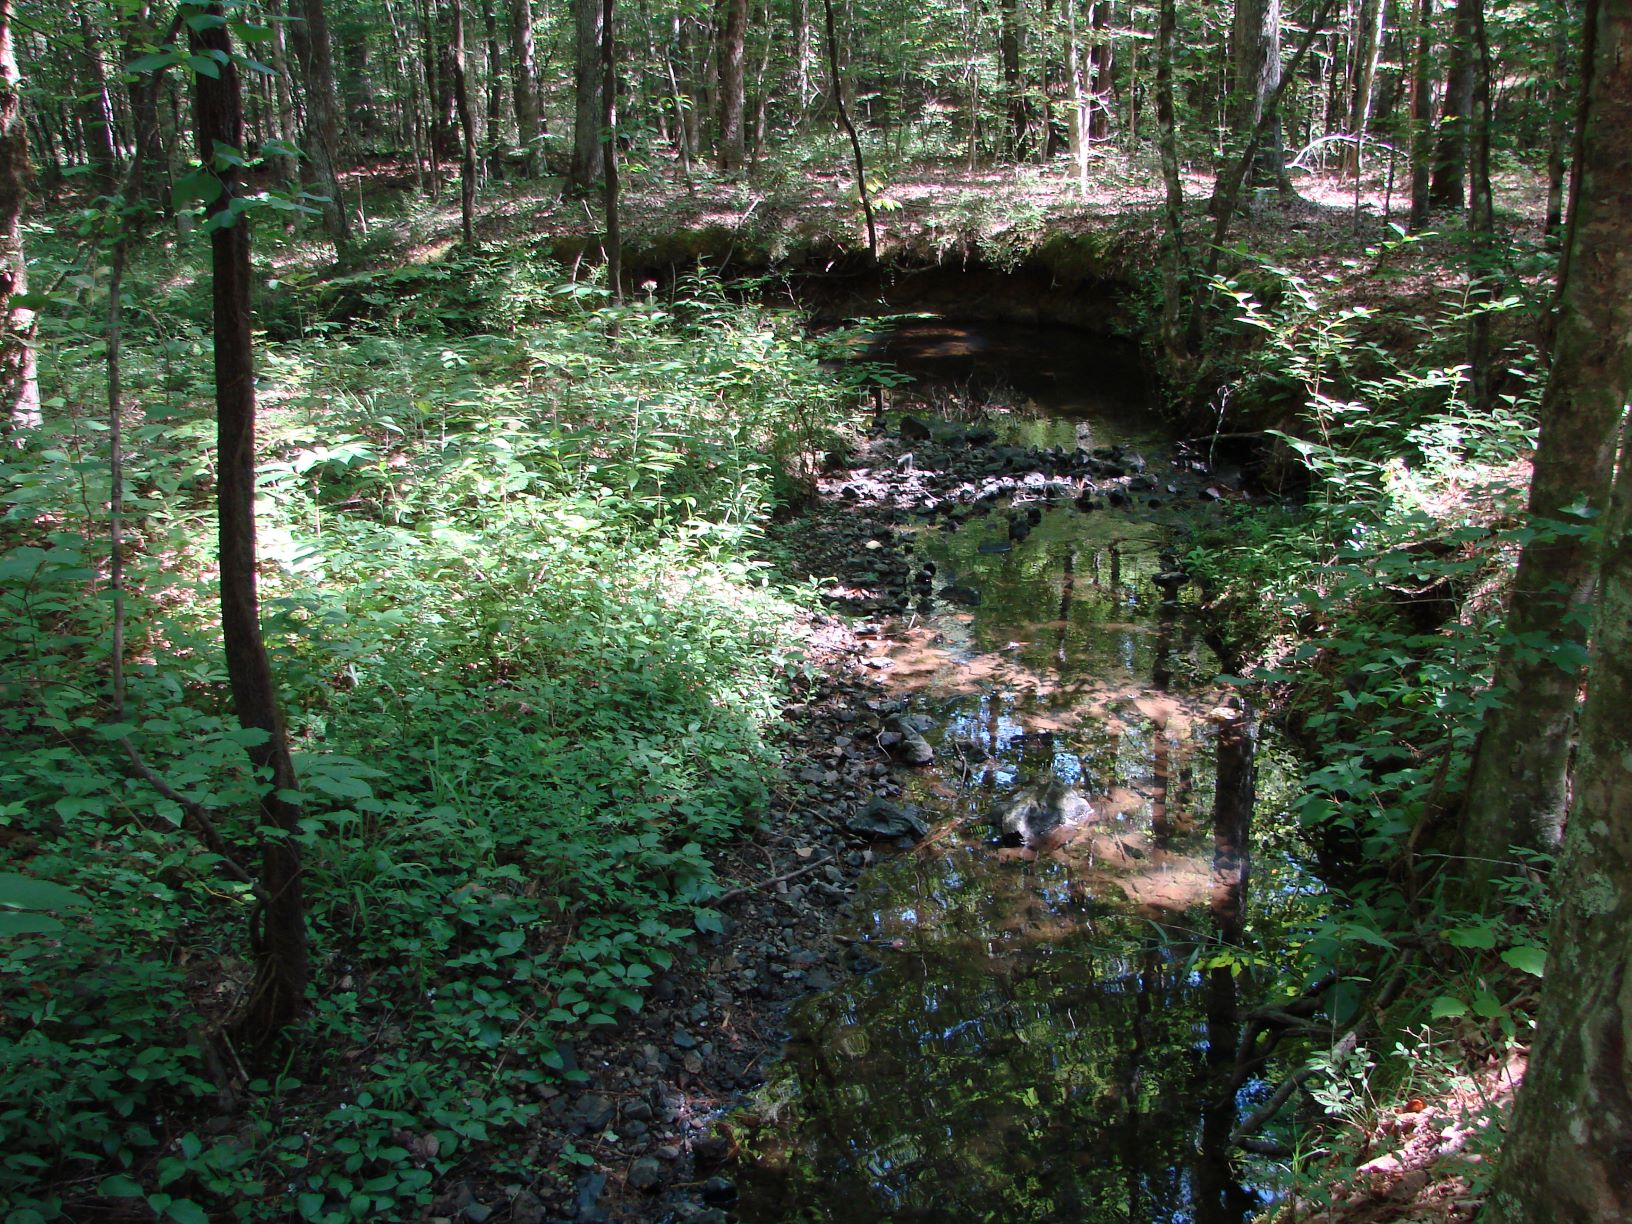 Another view of the creek that crosses the property